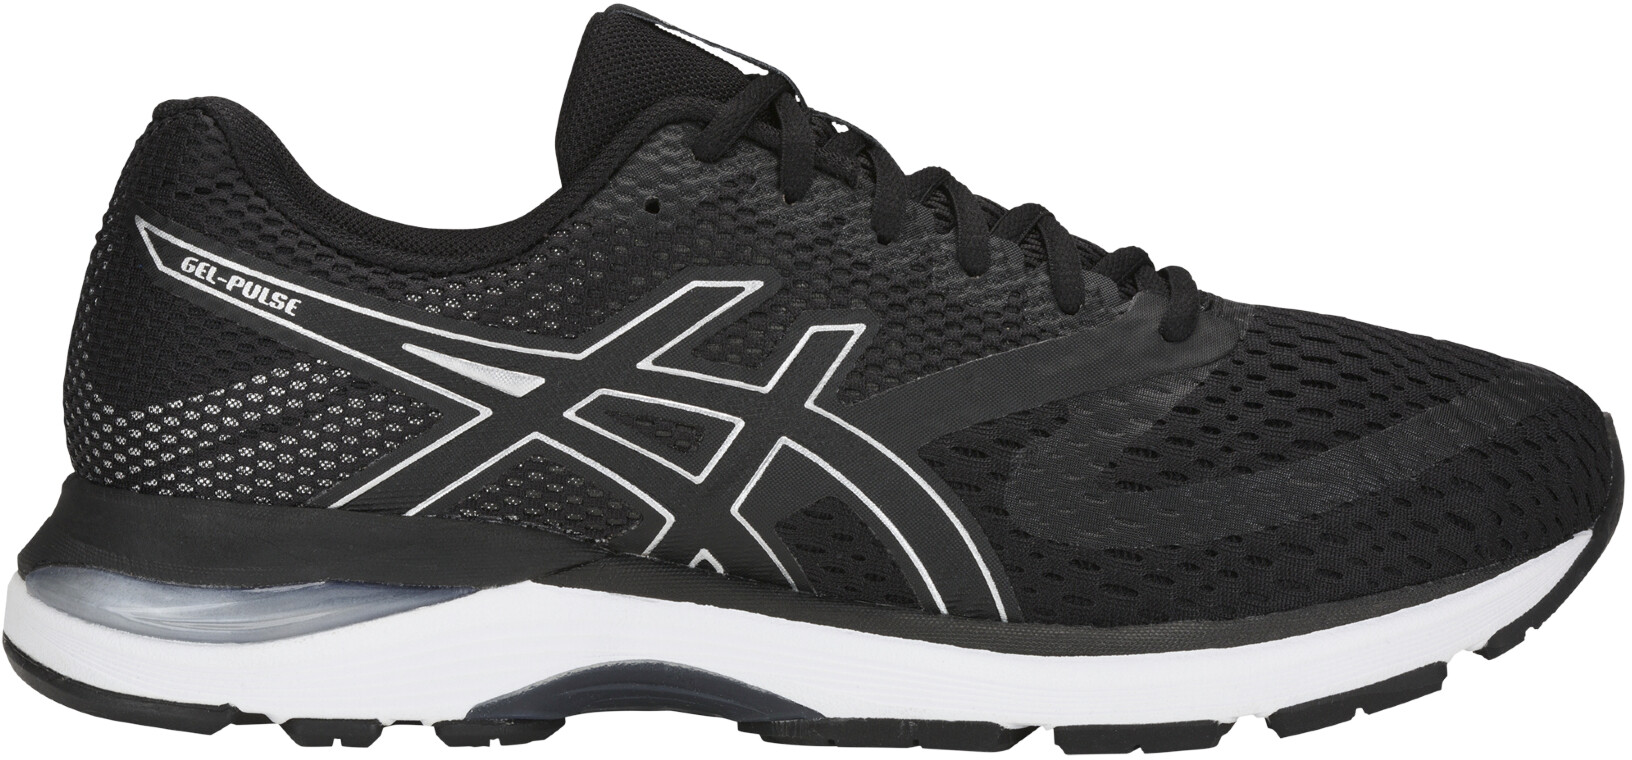 2c036a3cce10 asics Gel-Pulse 10 - Chaussures running Homme - noir argent ...